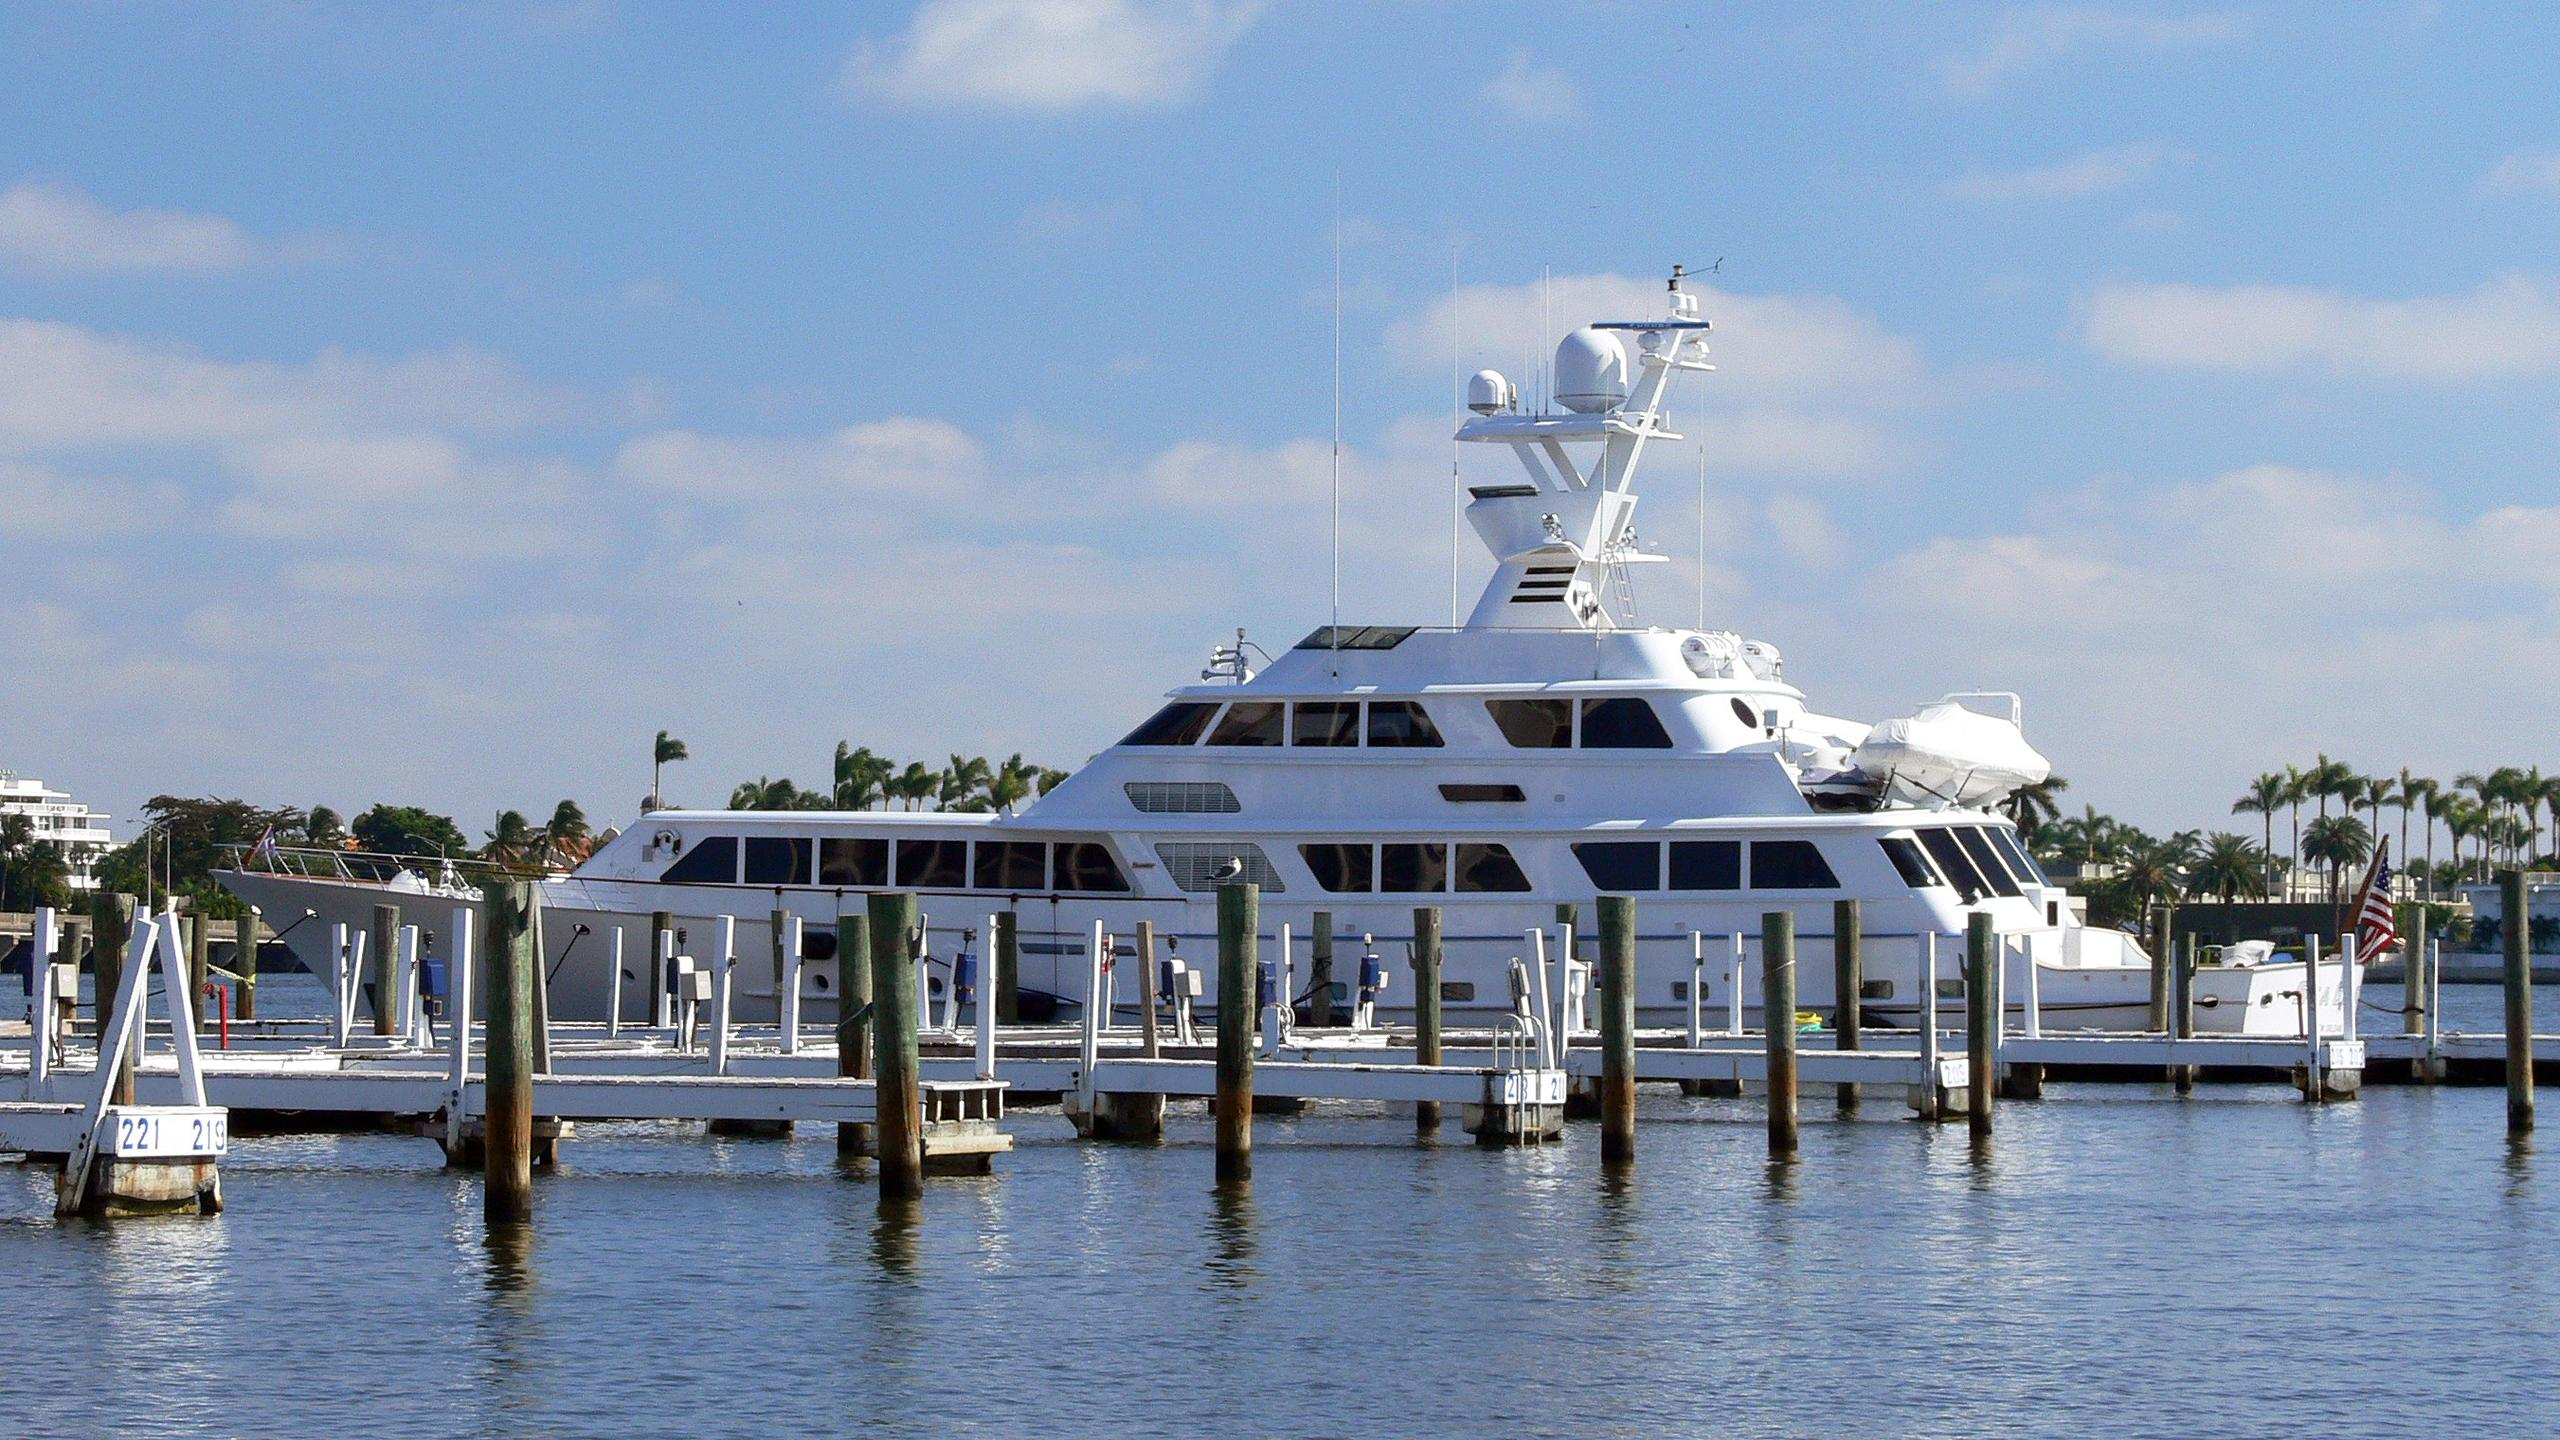 lady-sandals-motor-yacht-feadship-1985-40m-moored-half-profile